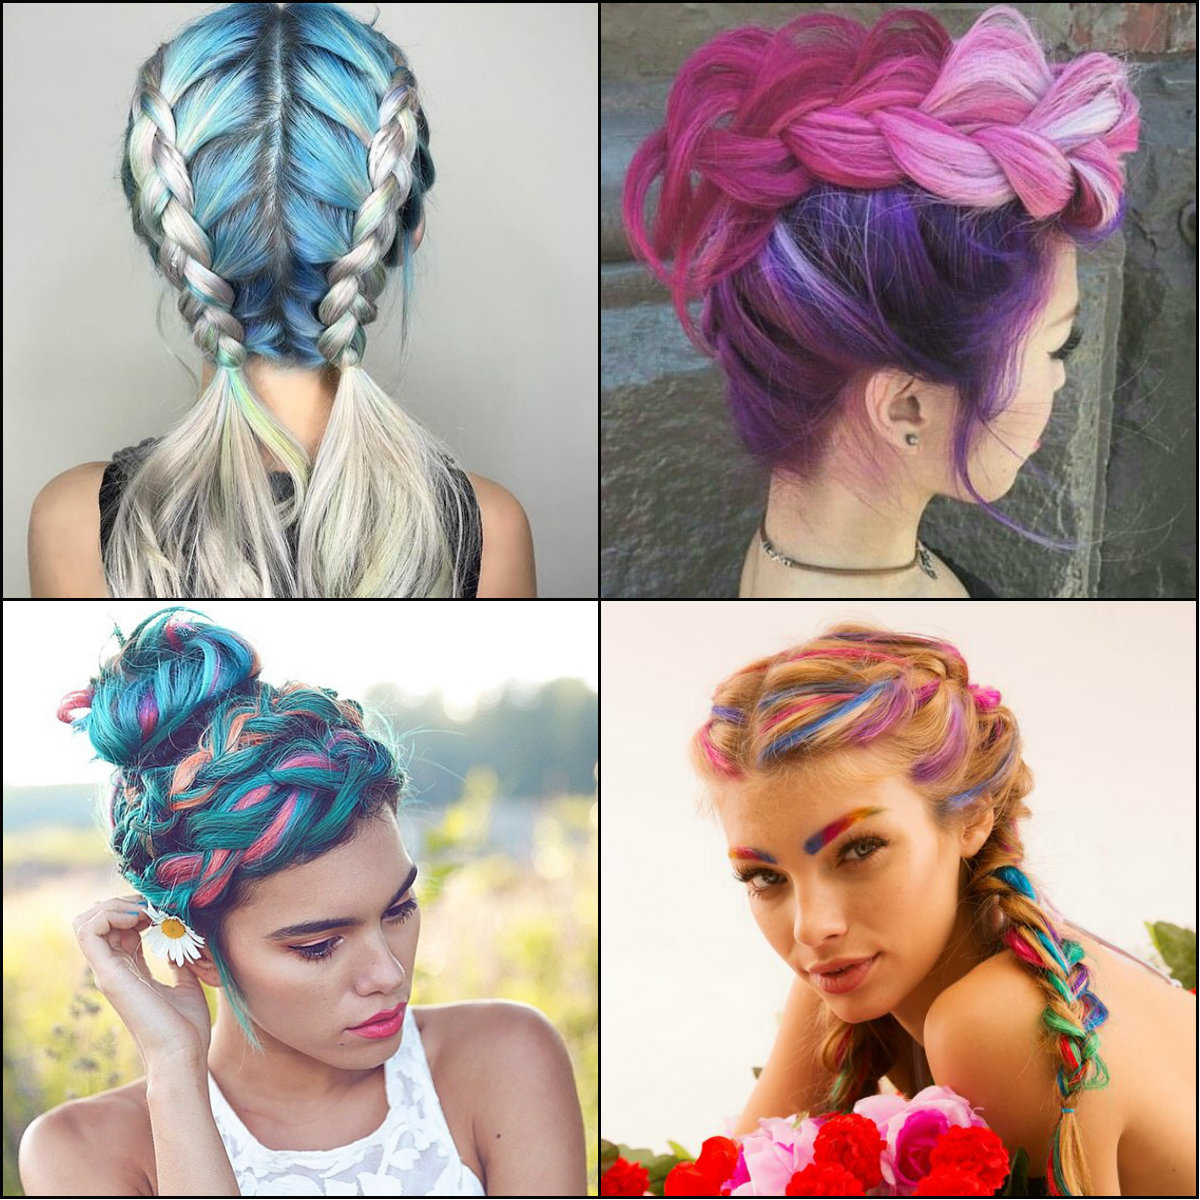 Impressive Pastel Color Braids Hairstyles You Won't Miss Out